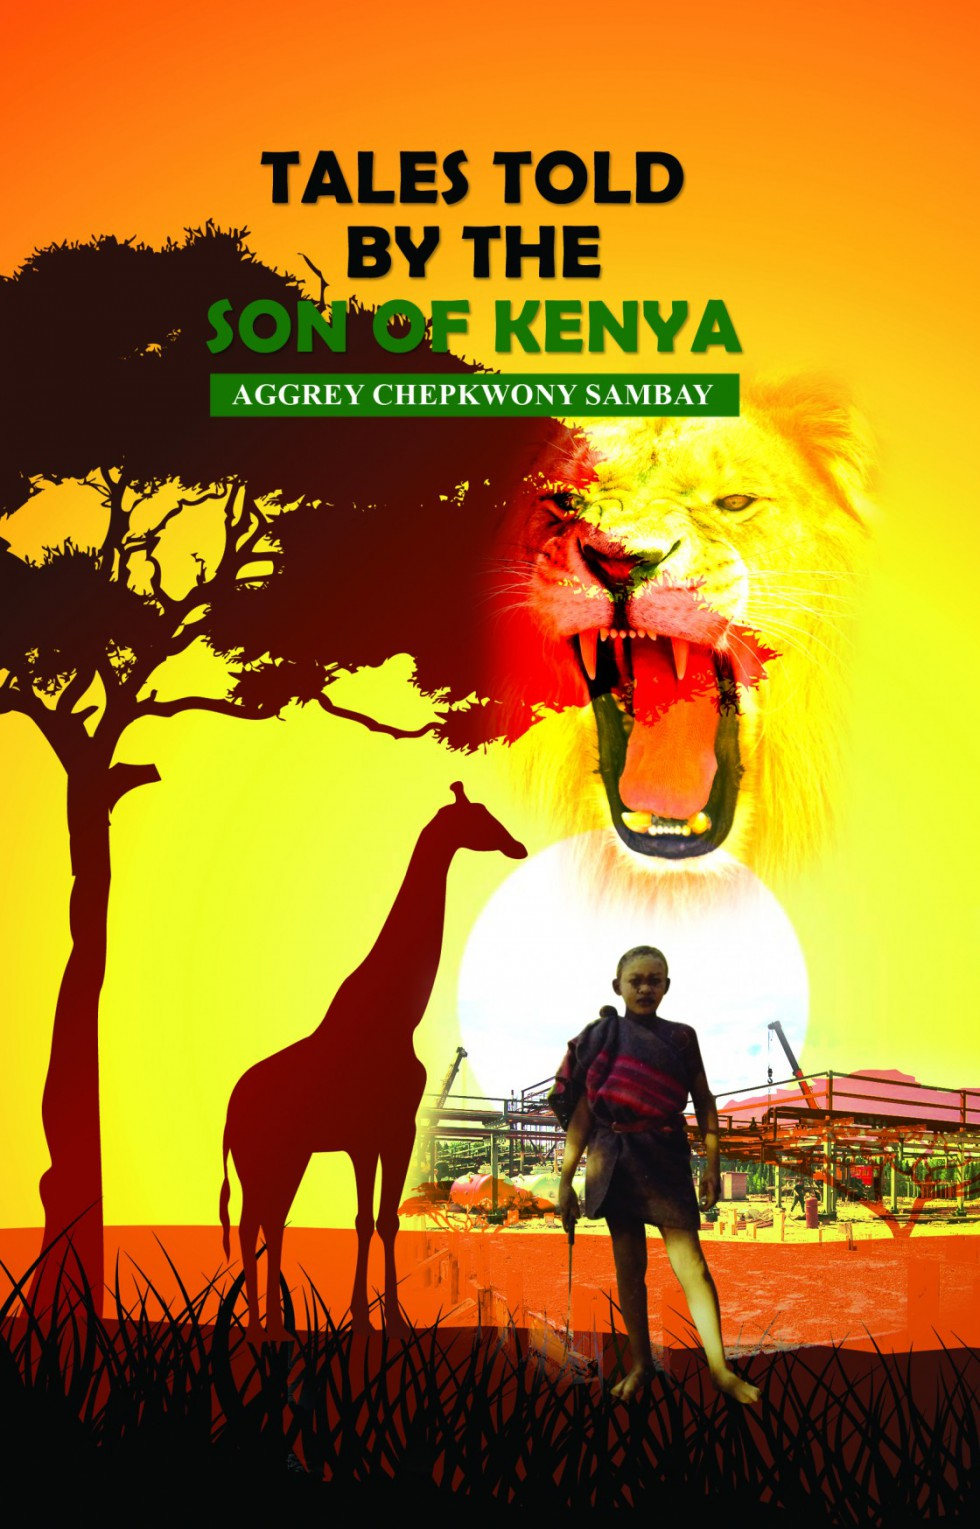 Tales told by the Son of Kenya